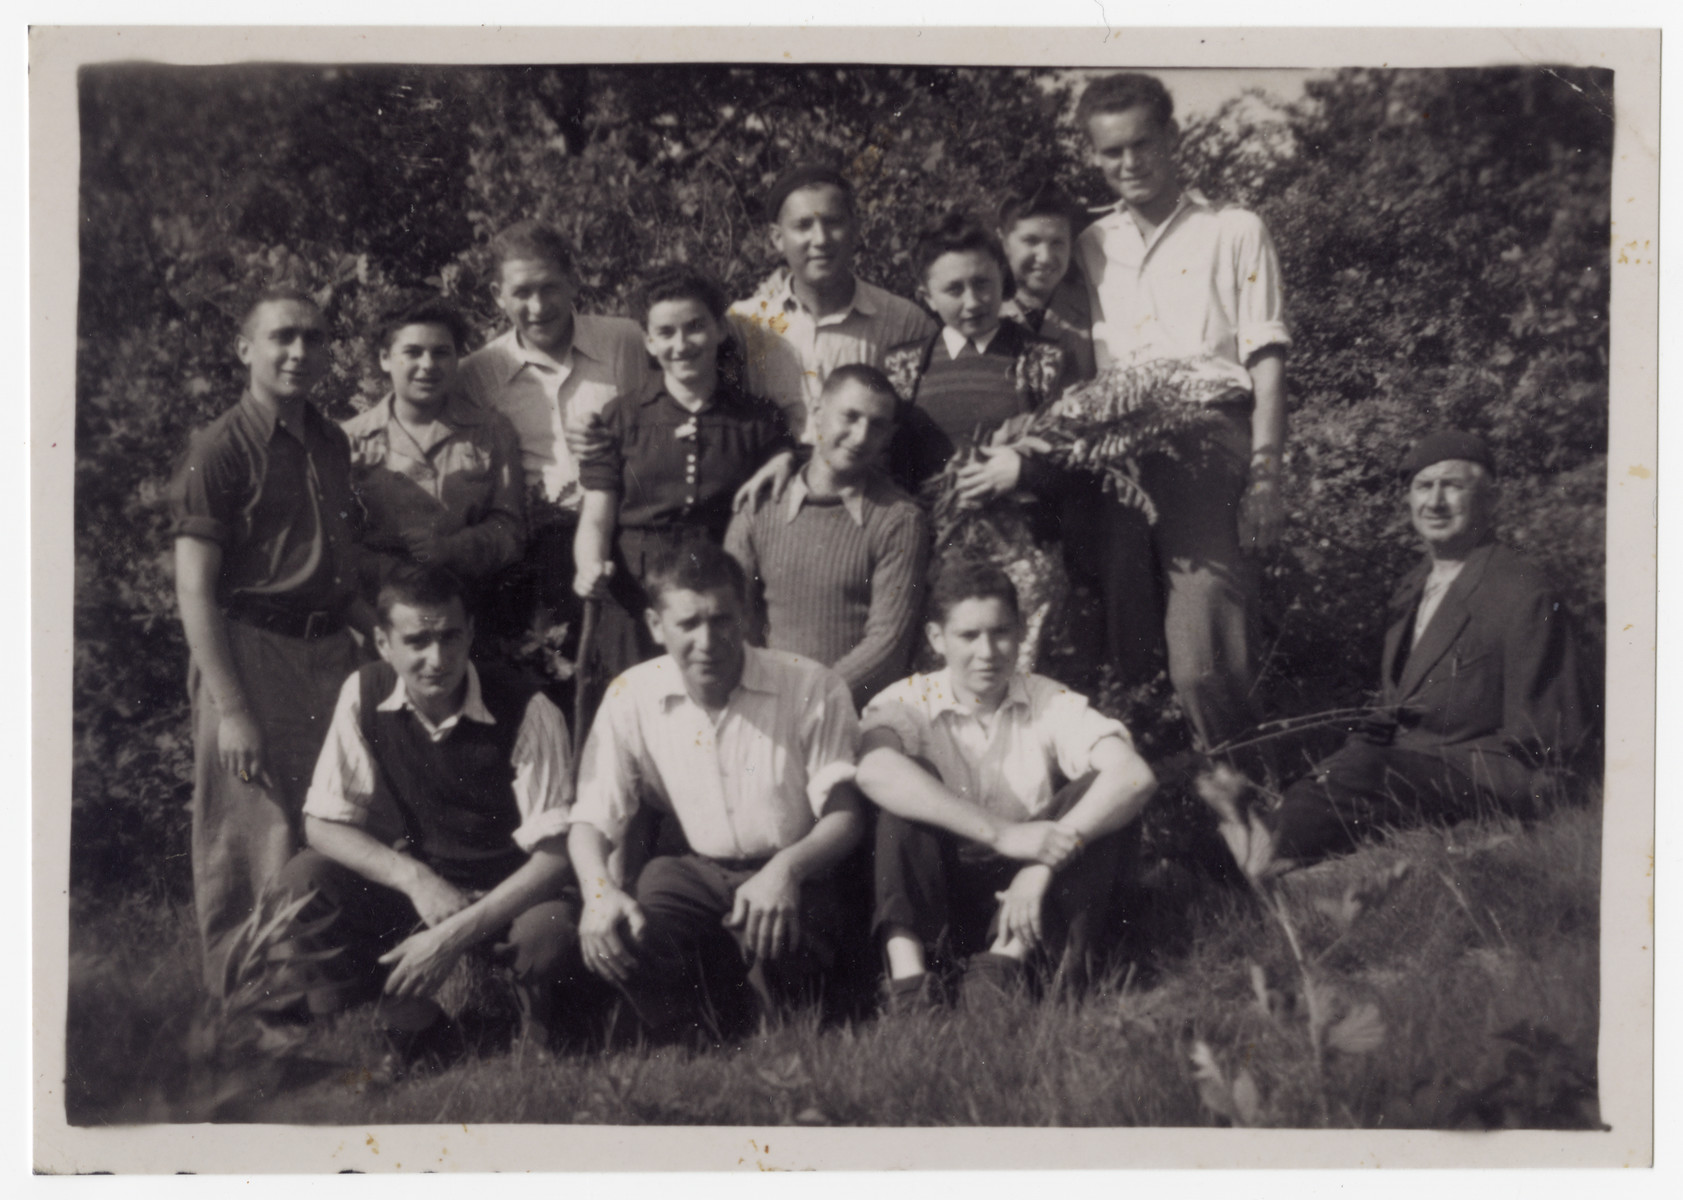 Group portrait of Jewish displaced persons in Corbion, Belgium.  Hanka Wajblum is standing in the second row, second from the left.  Alex Cige is standing, second row, on far left and Marta Bindiger-Cige is standing second row, fourth from left.